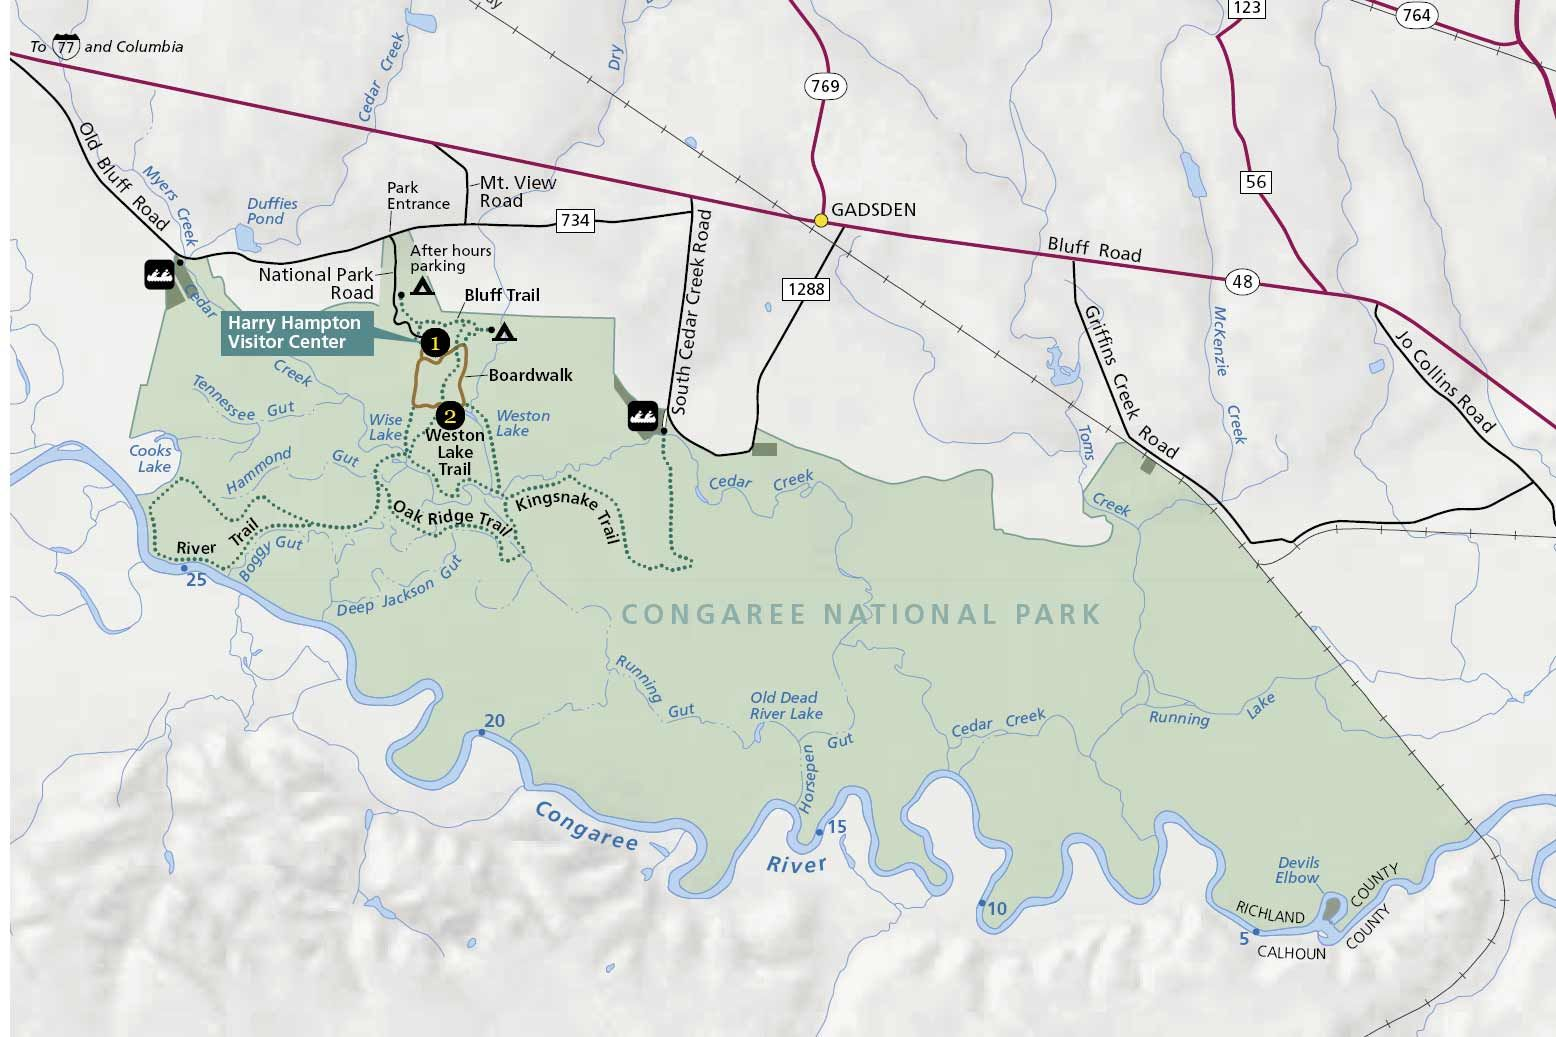 Congaree national park map Yahoo Search Results MAPS Out of